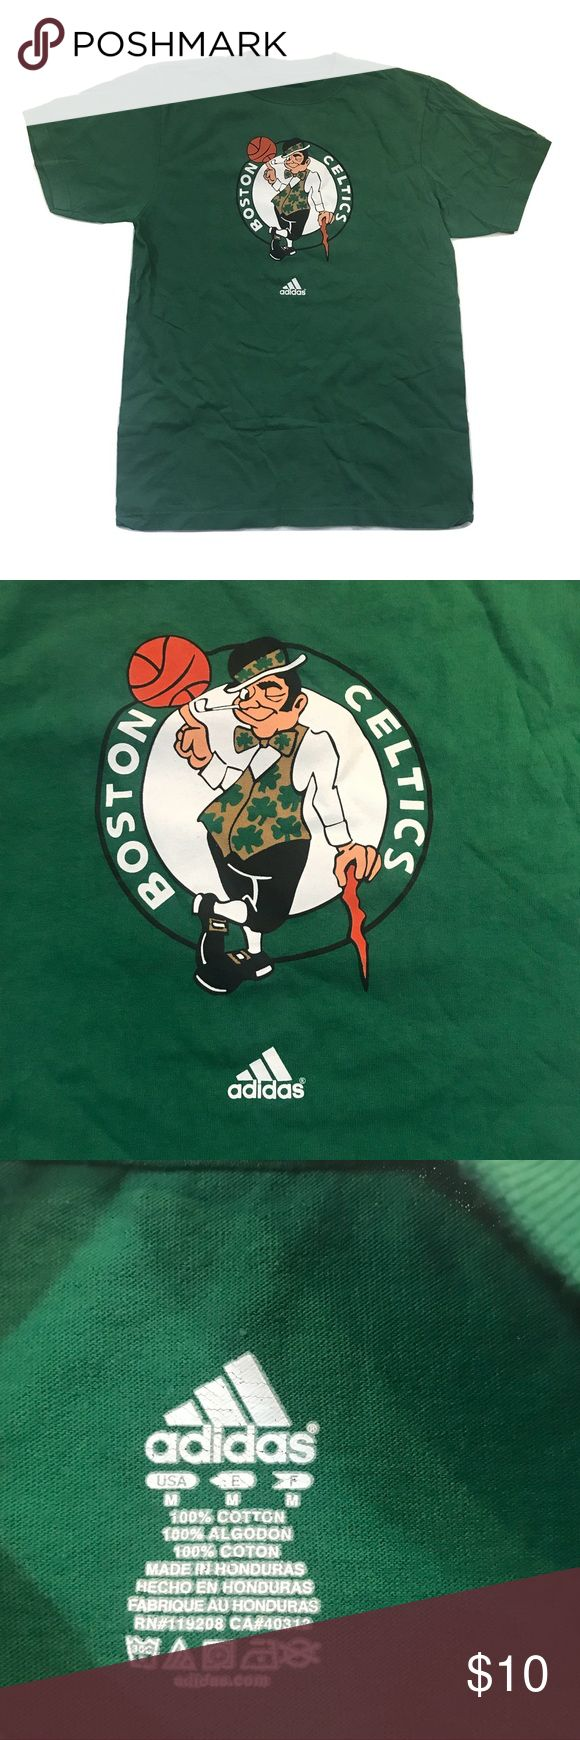 ADIDAS BOSTON CELTICS NBA MEN'S T-SHIRT MEDIUM 100% Cotton Size: Medium Top To Bottom: 26 Inches Pit To Pit: 18 Inches  Shirt is in overall EXCELLENT shape with no stains or tears! Comes from a smoke and pet free environment! adidas Shirts Tees - Short Sleeve